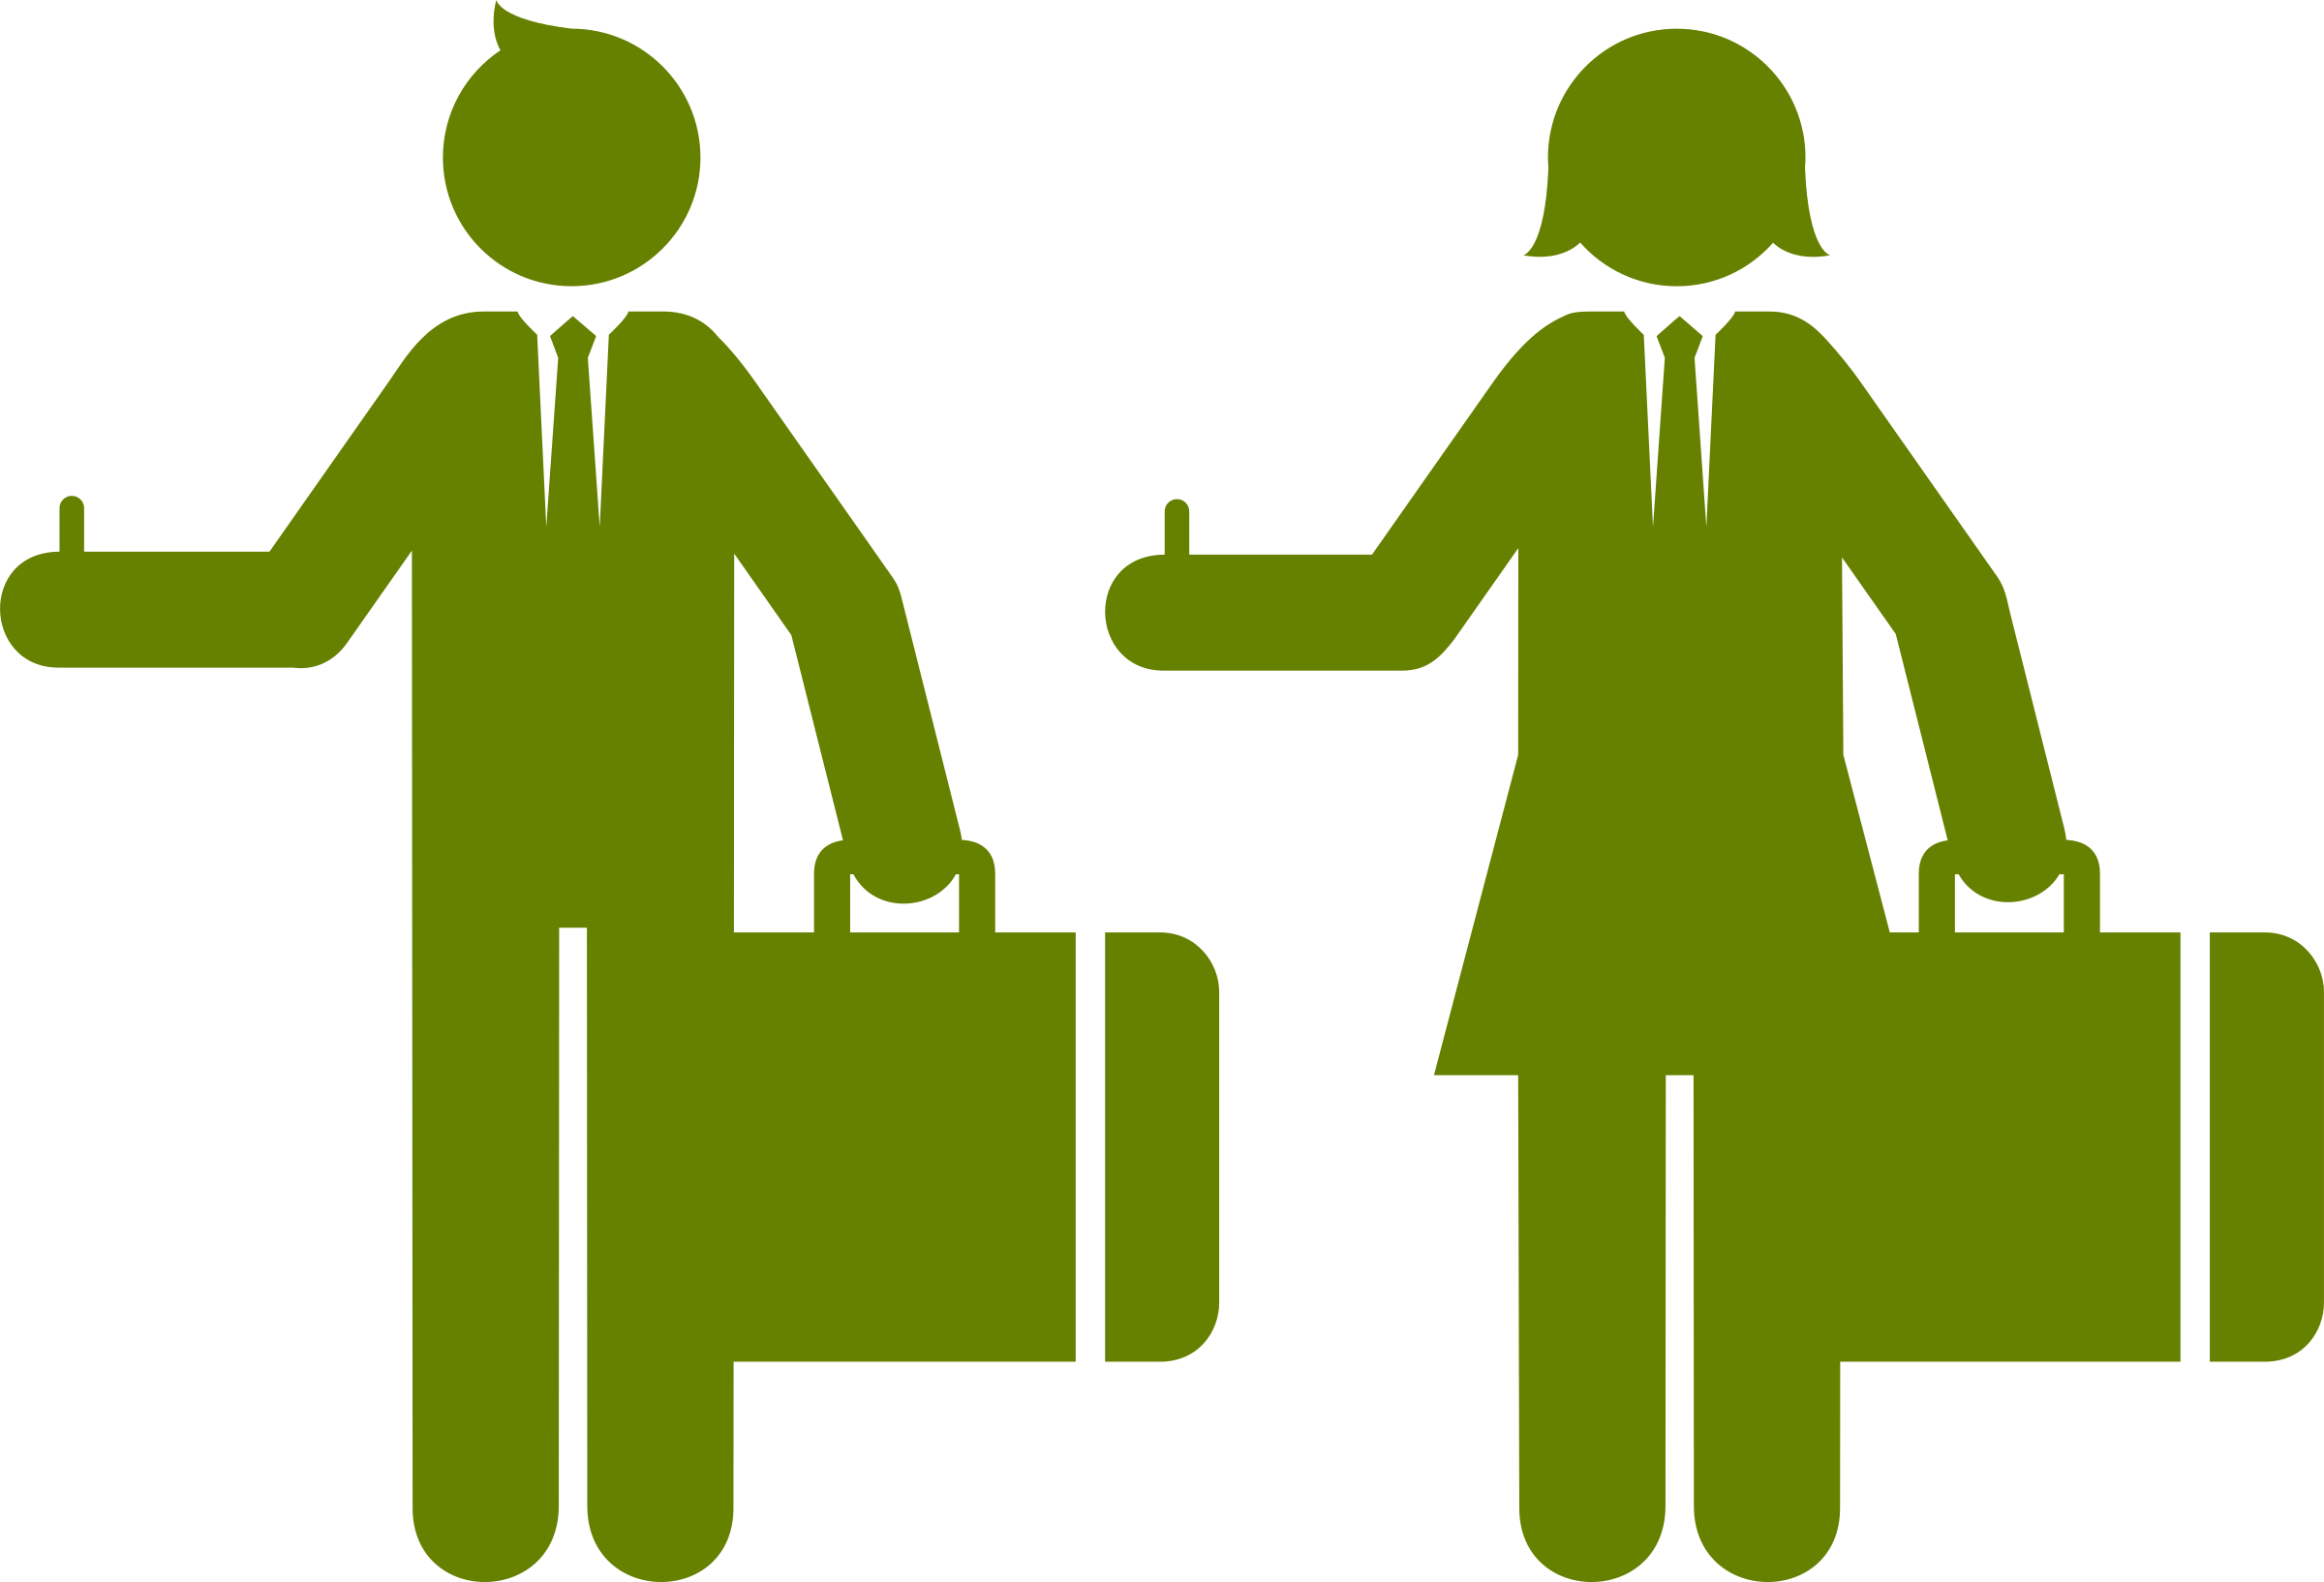 Hitchhiking icons png free. People clipart vector